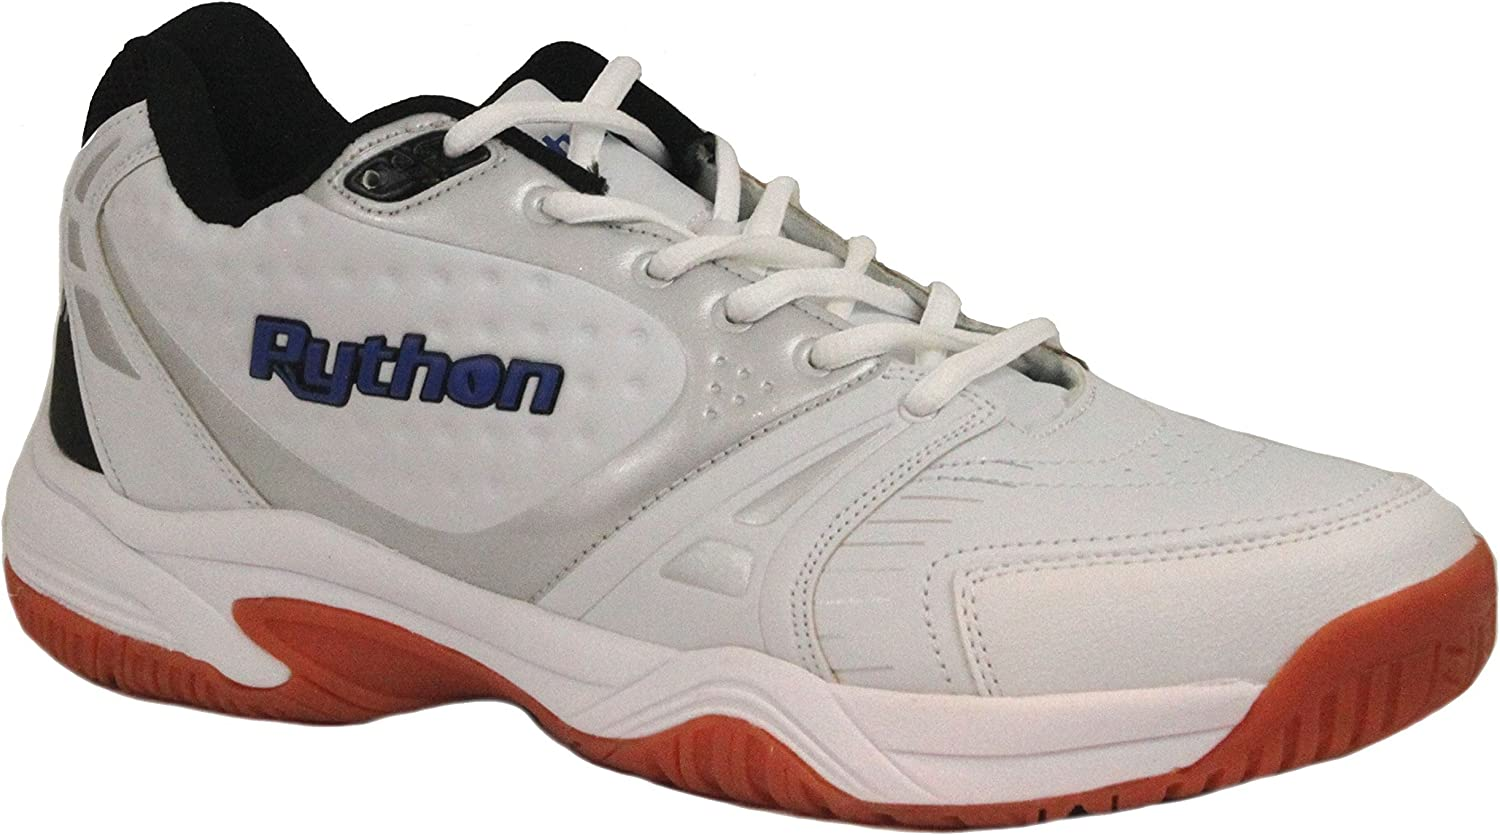 Python Men's Deluxe Indoor (Mid) Racquetball shoes (Non-Marking)